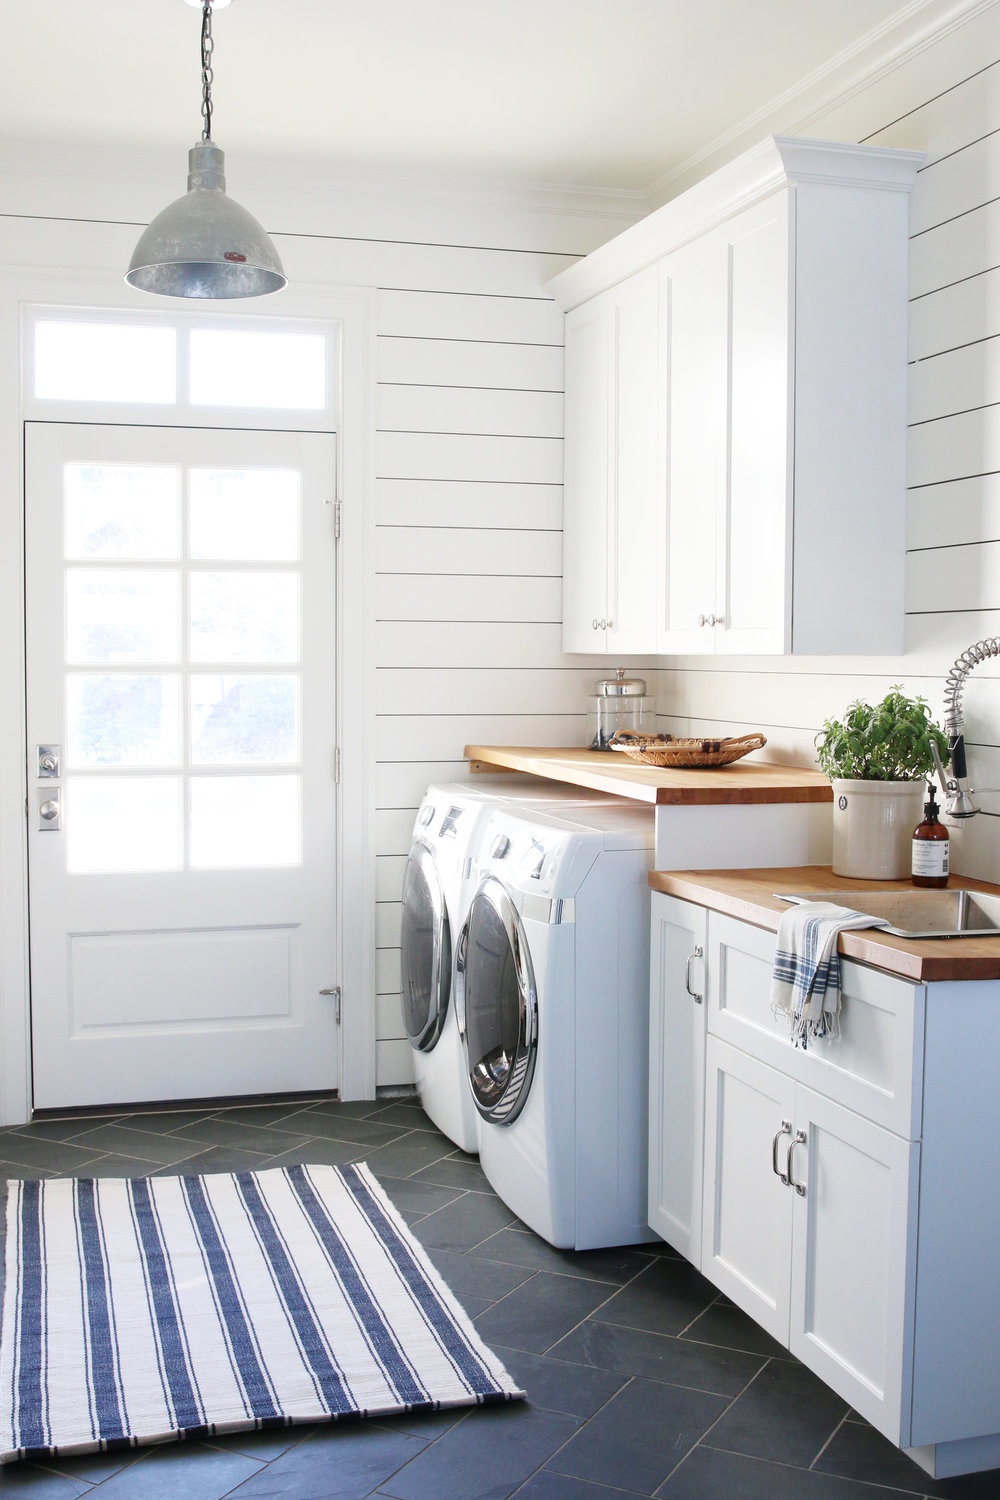 Get+the+Look-+Laundry+Room.jpeg